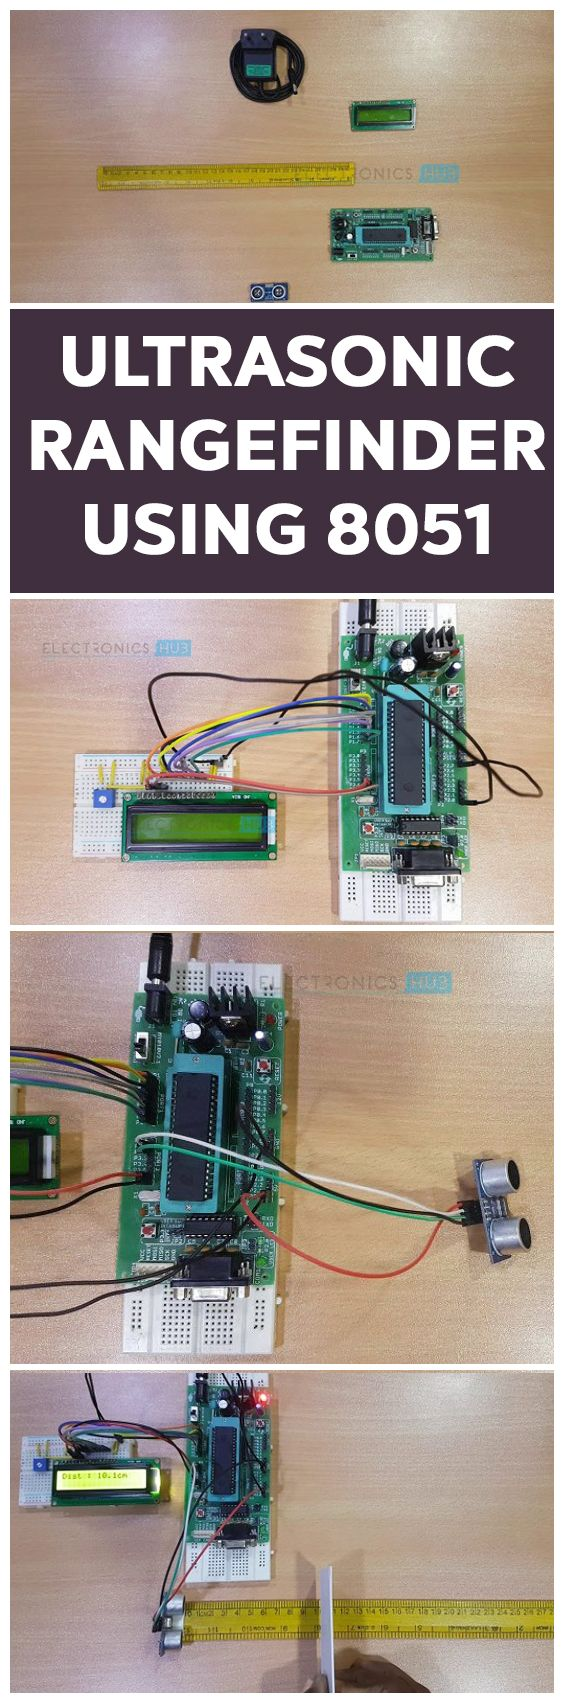 8051 Microcontroller Projects For Engineering Students How To Make Ultrasonic Rangefinder Project Using Arduino Manual Y Proyectosr Pinterest Electronics And Tech